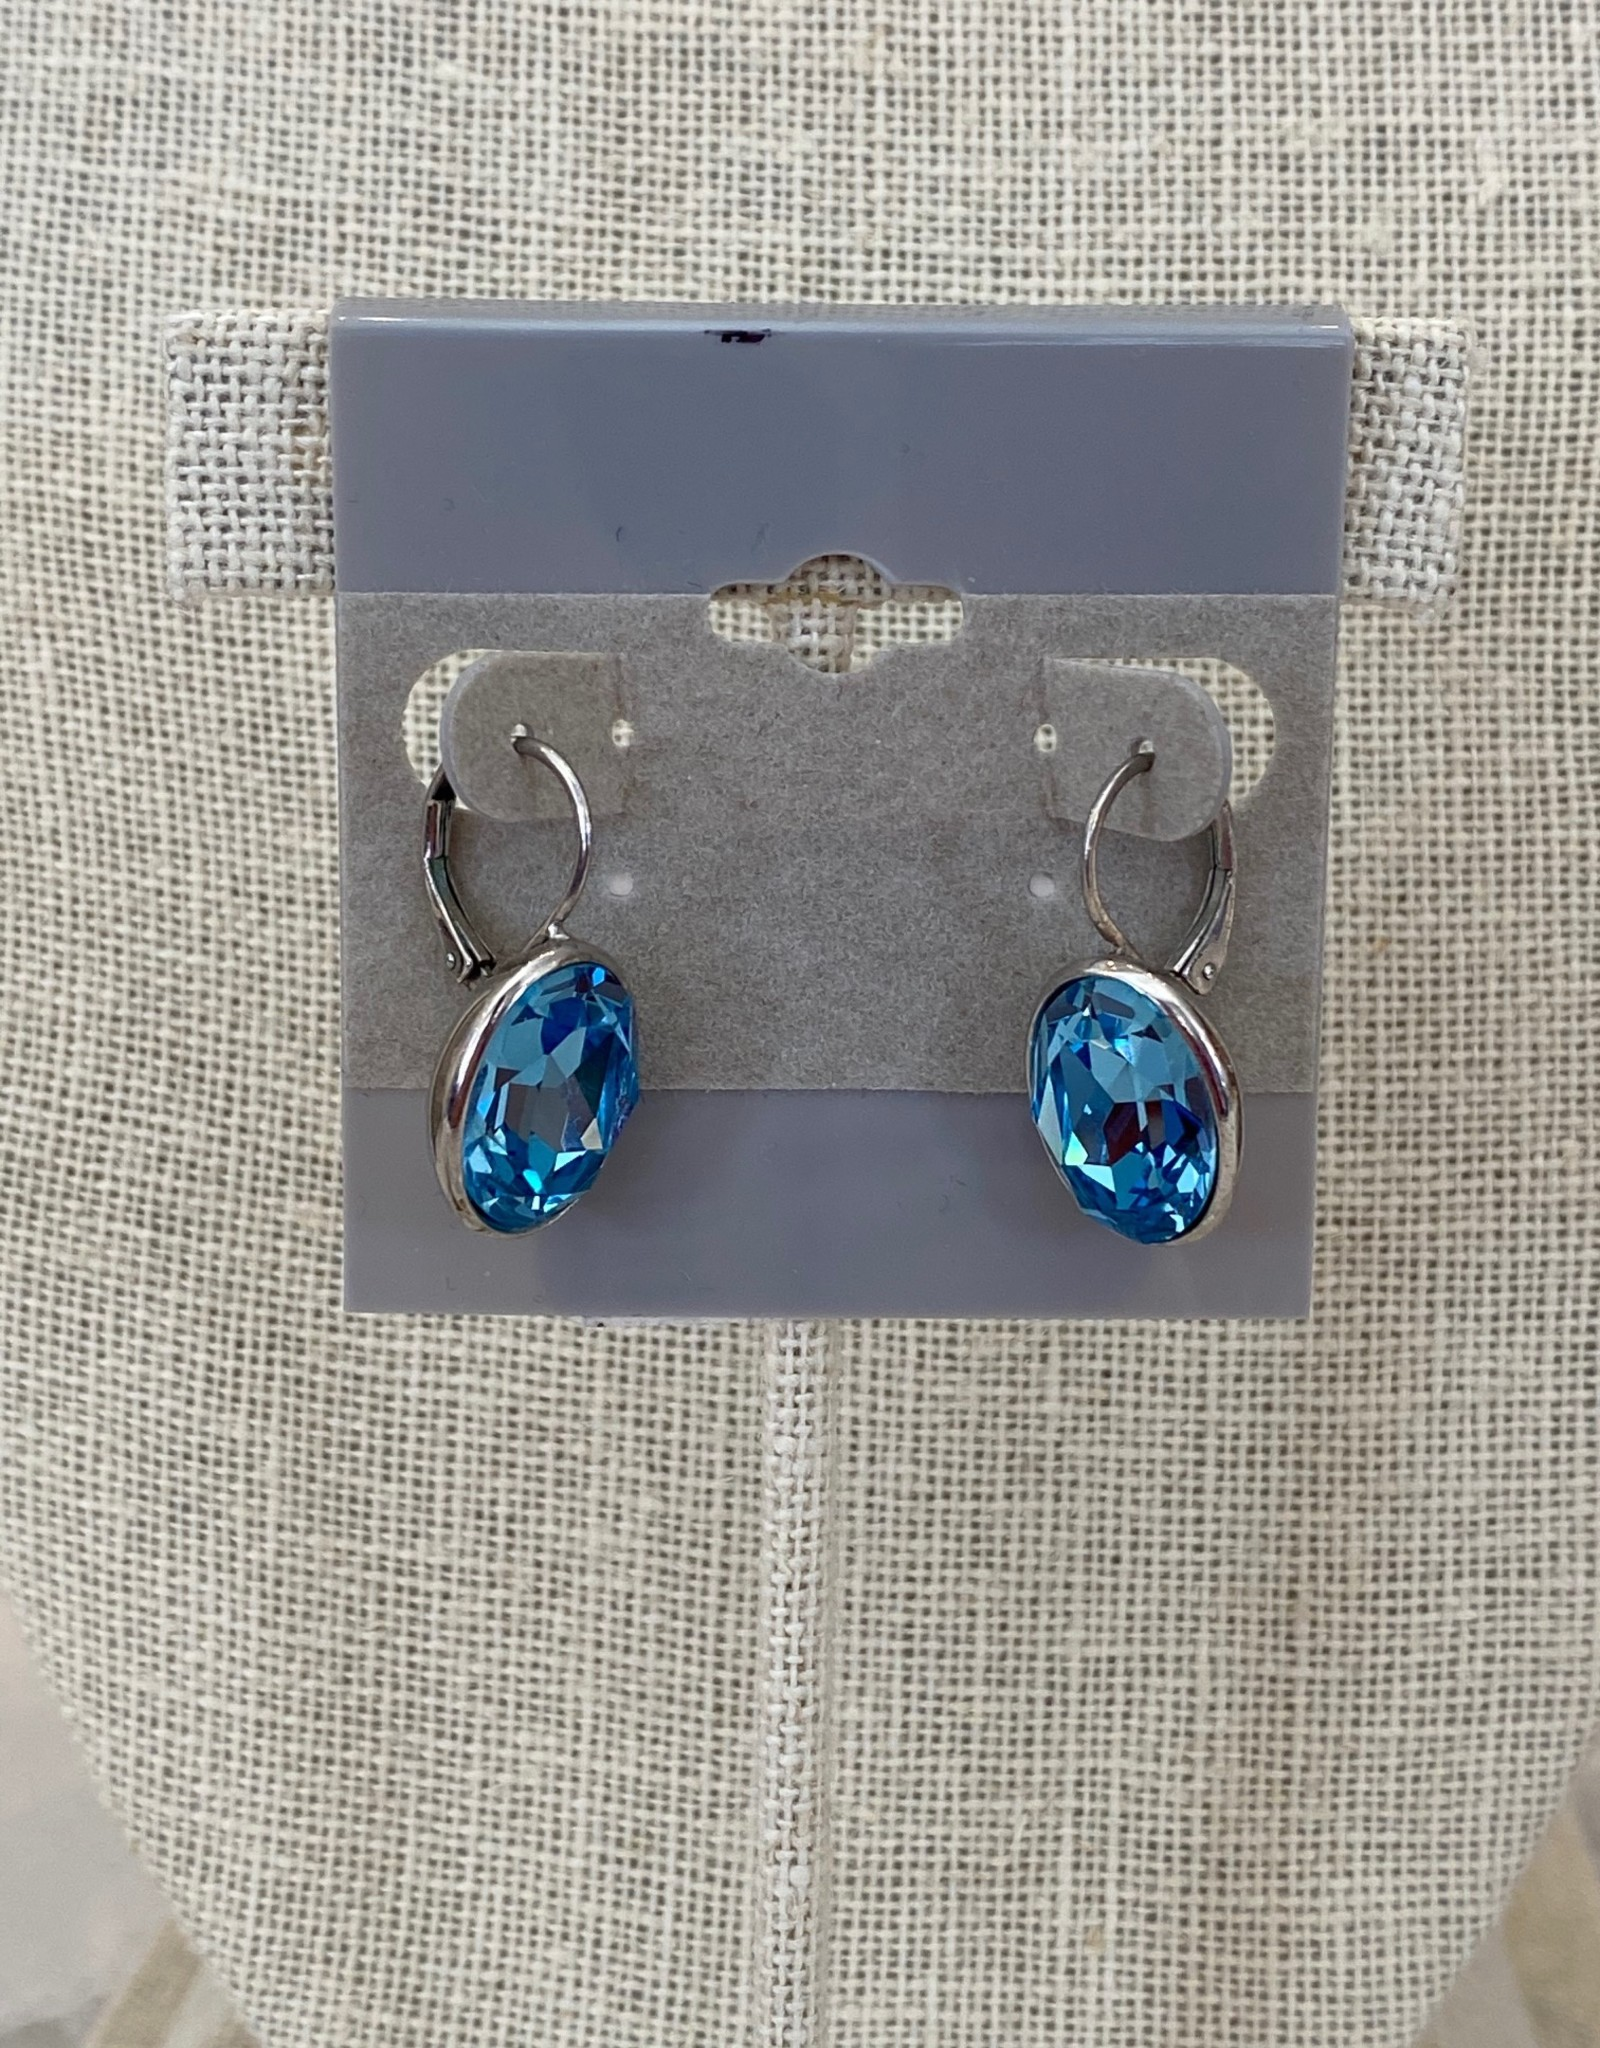 Swarovski Crystal Earrings Blue